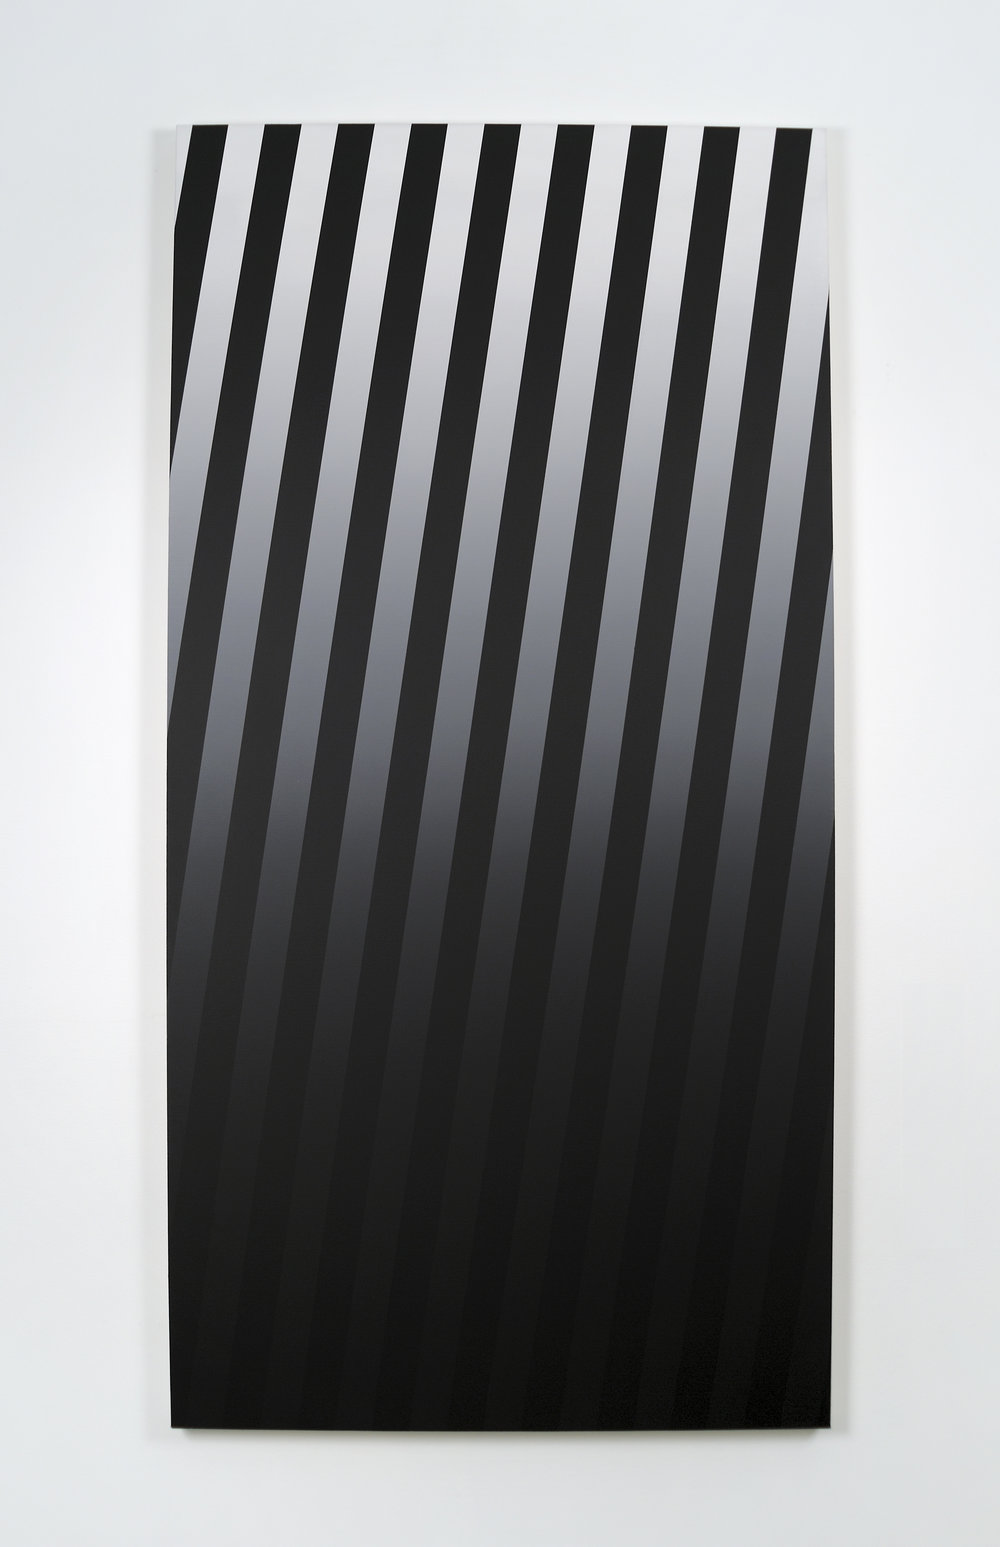 Gradient, 2010 acrylic on canvas 180 x 90 cm - 70 7/8 x 35 3/8 inches